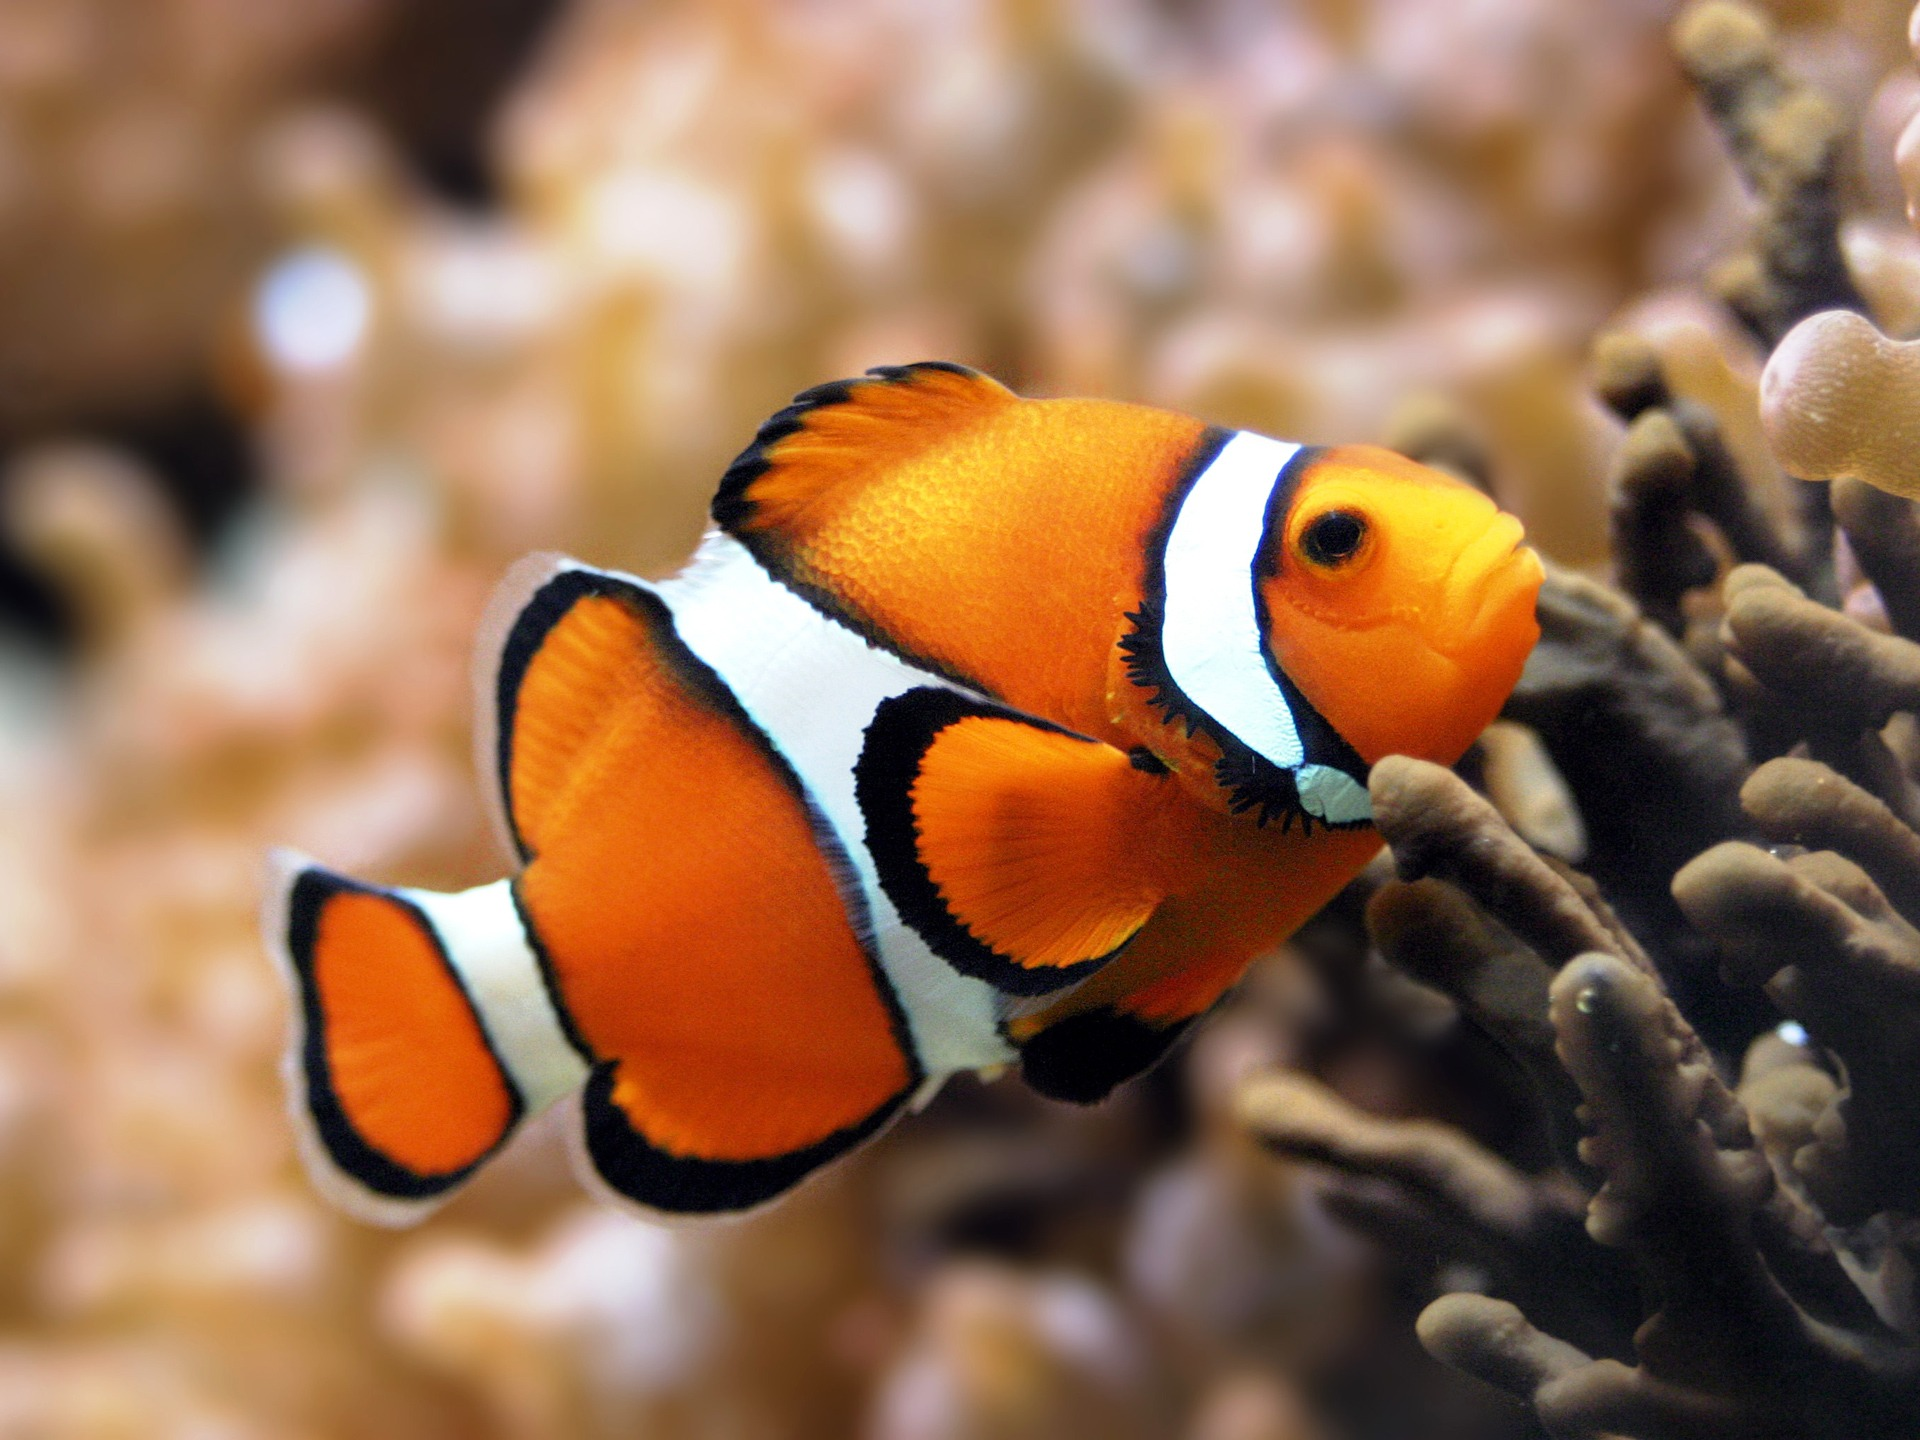 orange clownfish wallpaper fish animals wallpapers in jpg format for